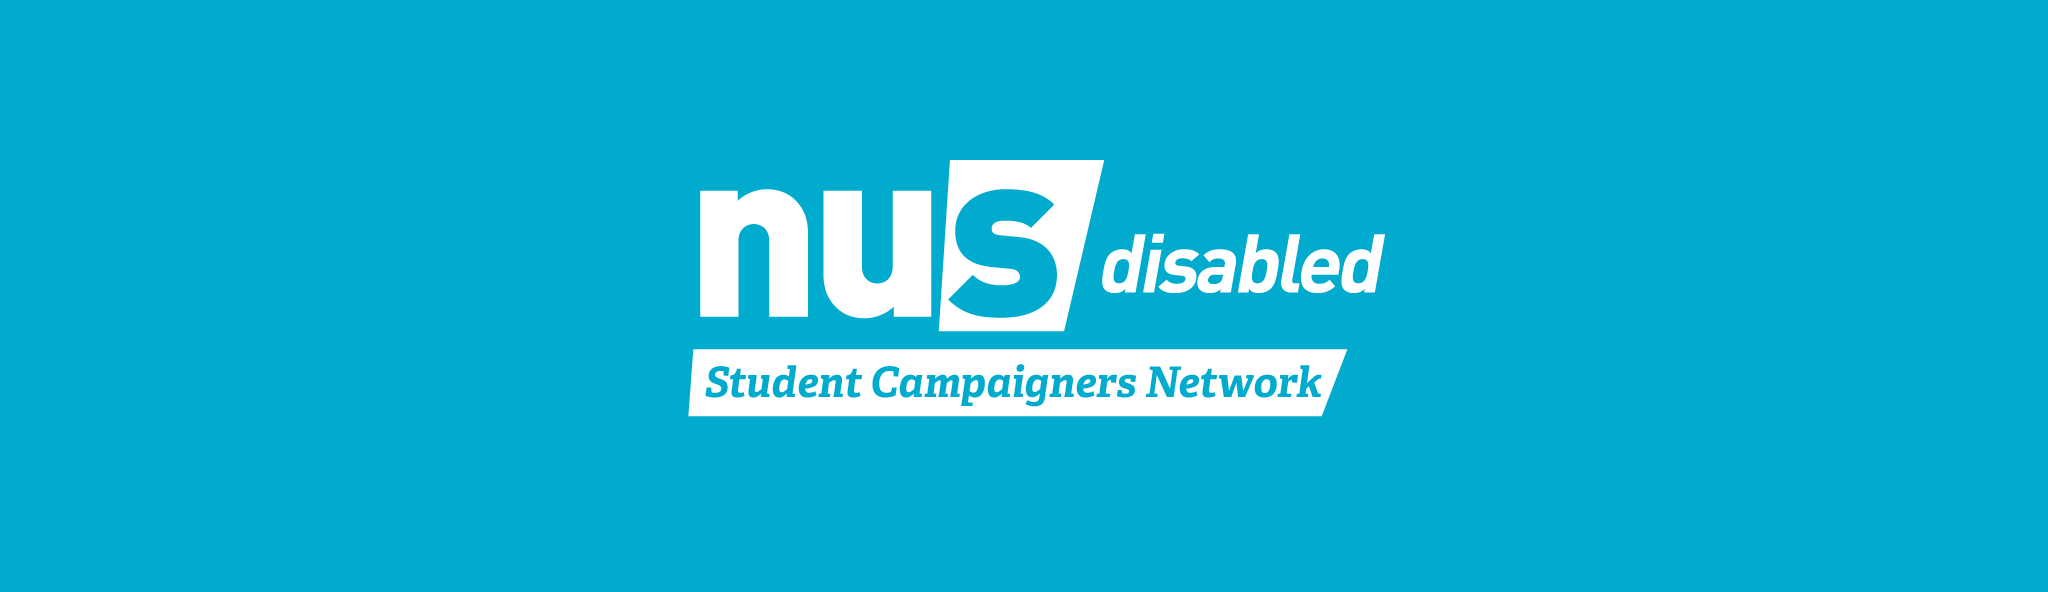 NUS Disabled Student Campaigners Network